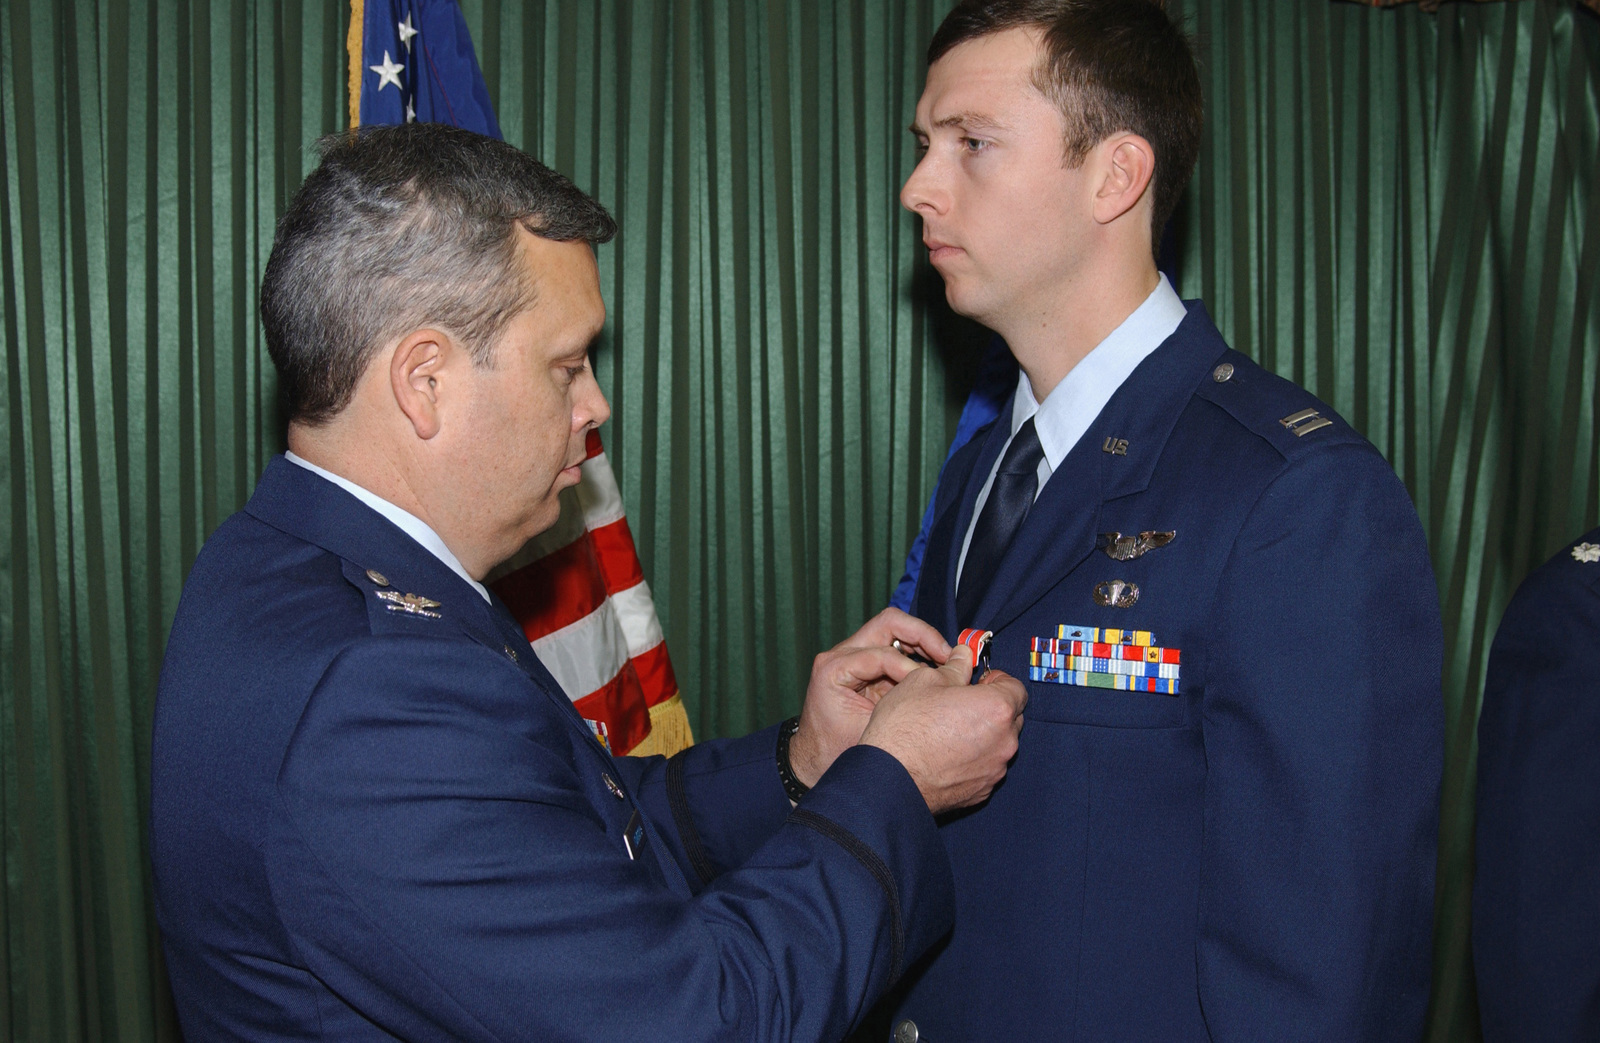 US Air Force (USAF) Colonel (COL) Michael A Longoria (left), Commander, 18th Air Support Operations Group (ASOG), Pope Air Force Base (AFB), North Carolina (NC), pins the Bronze Star on USAF Captain (CAPT) Timothy B Piccin, 17th Air Support Operations Squadron (ASOS), Hunter Army Airfield (AAF), Georgia (GA). They awards ceremony was held at the Hunter Club on the base